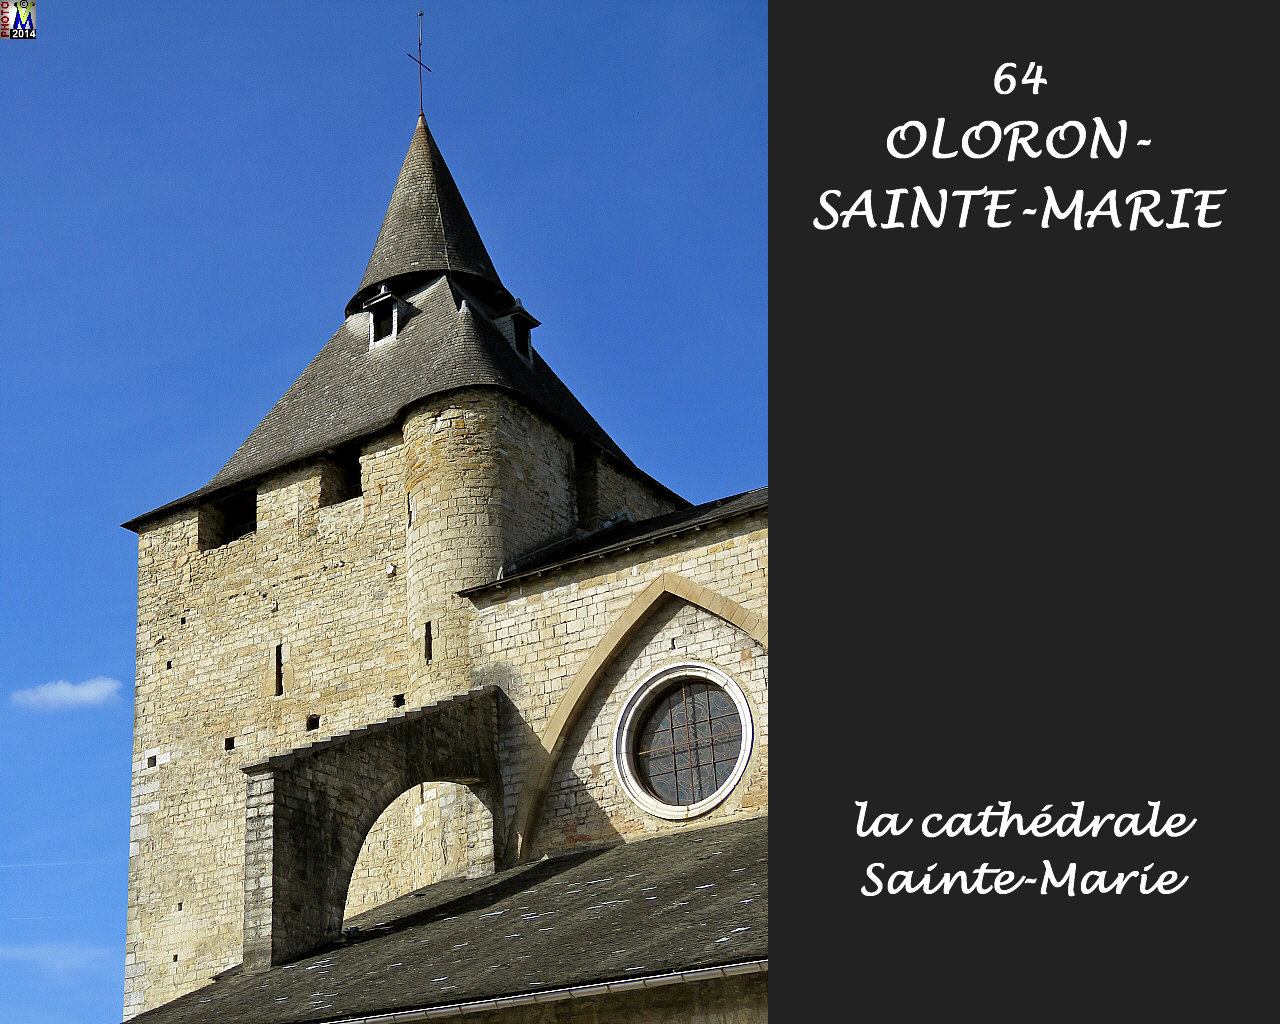 64OLORON-STE-MARIE_cathedrale_110.jpg